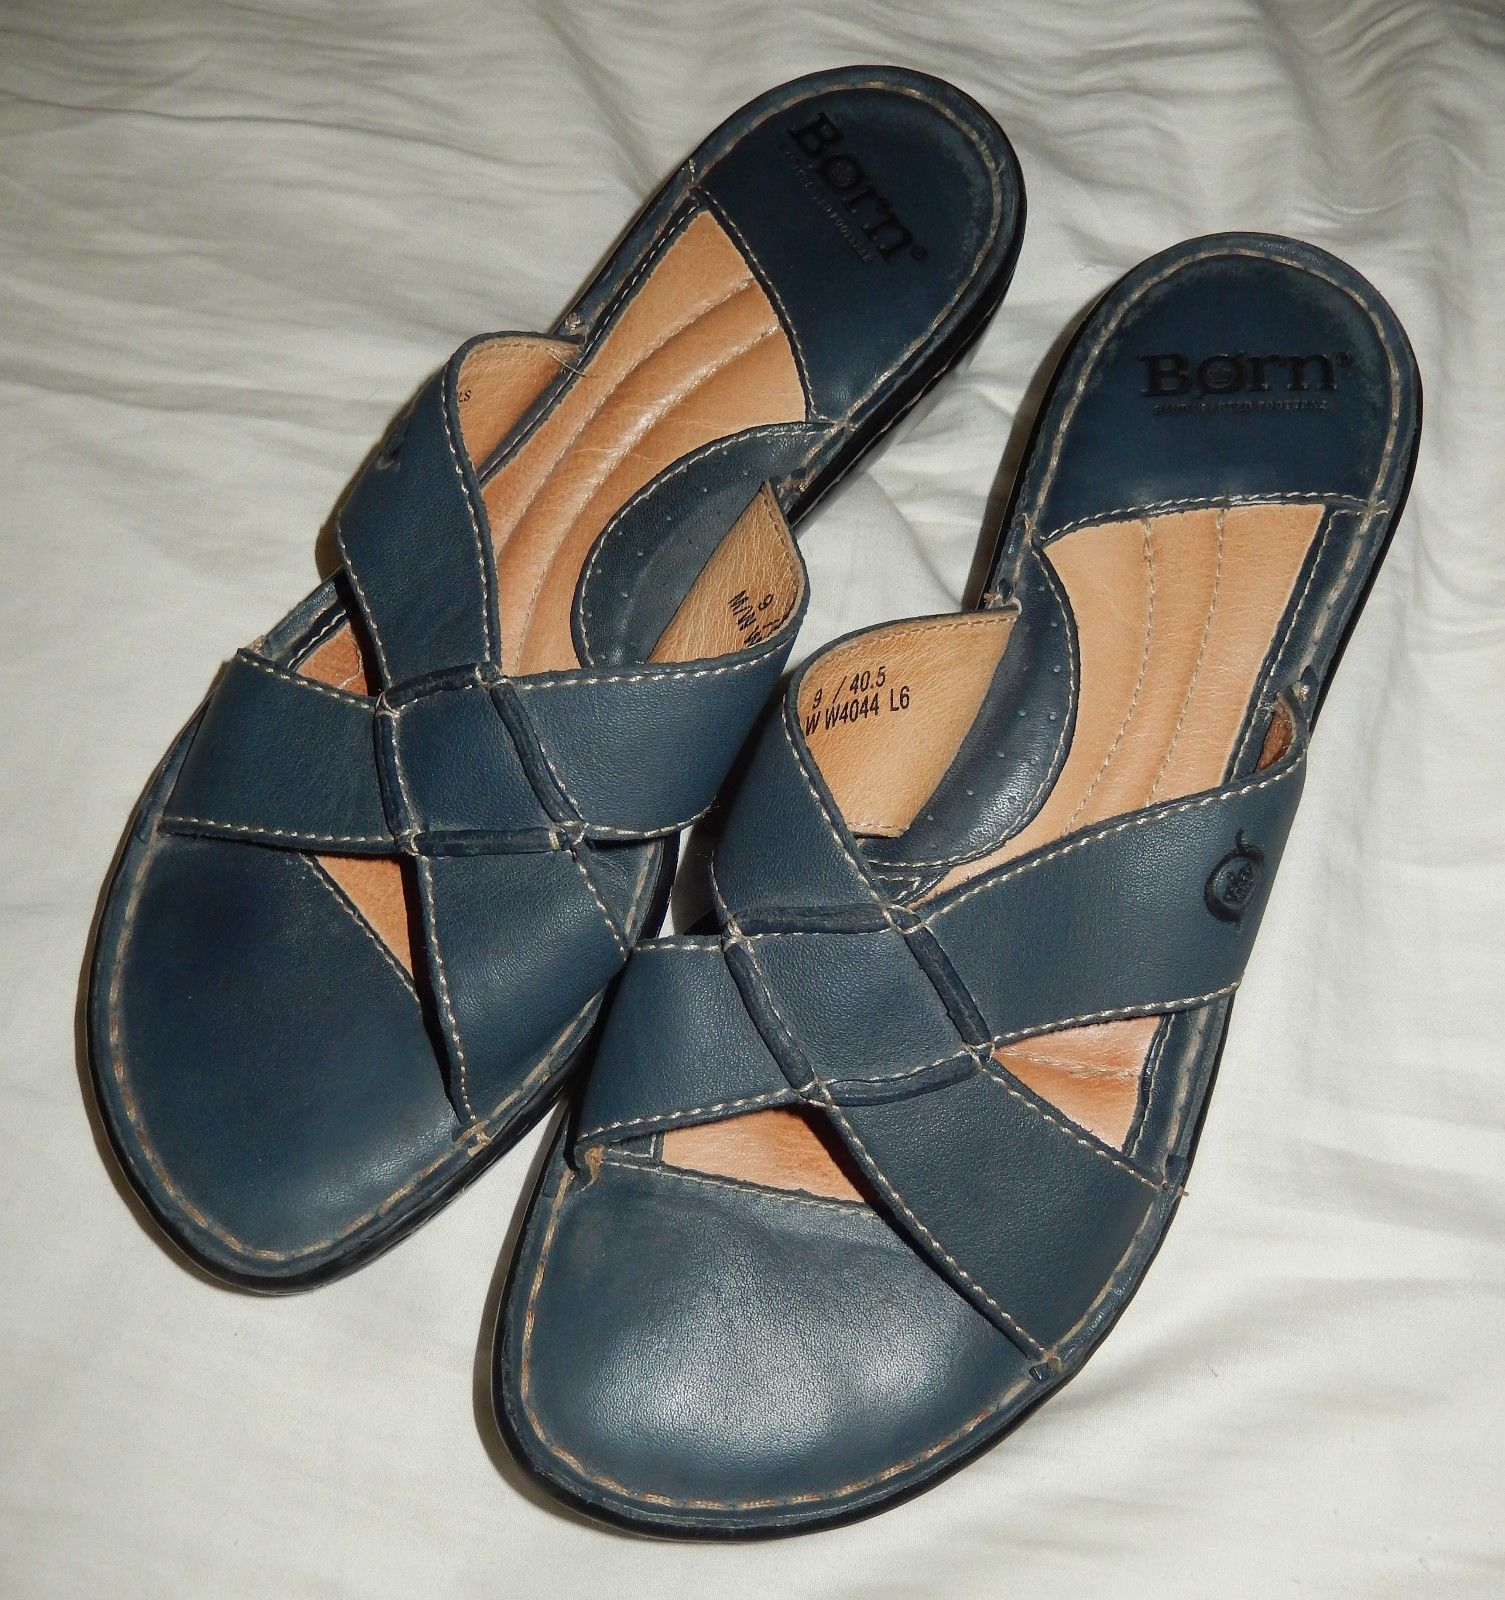 d715adeef338 57. 57. Previous. BORN Black Leather Wedge Sandals Slides Women s Size 9  Med · BORN Black Leather ...